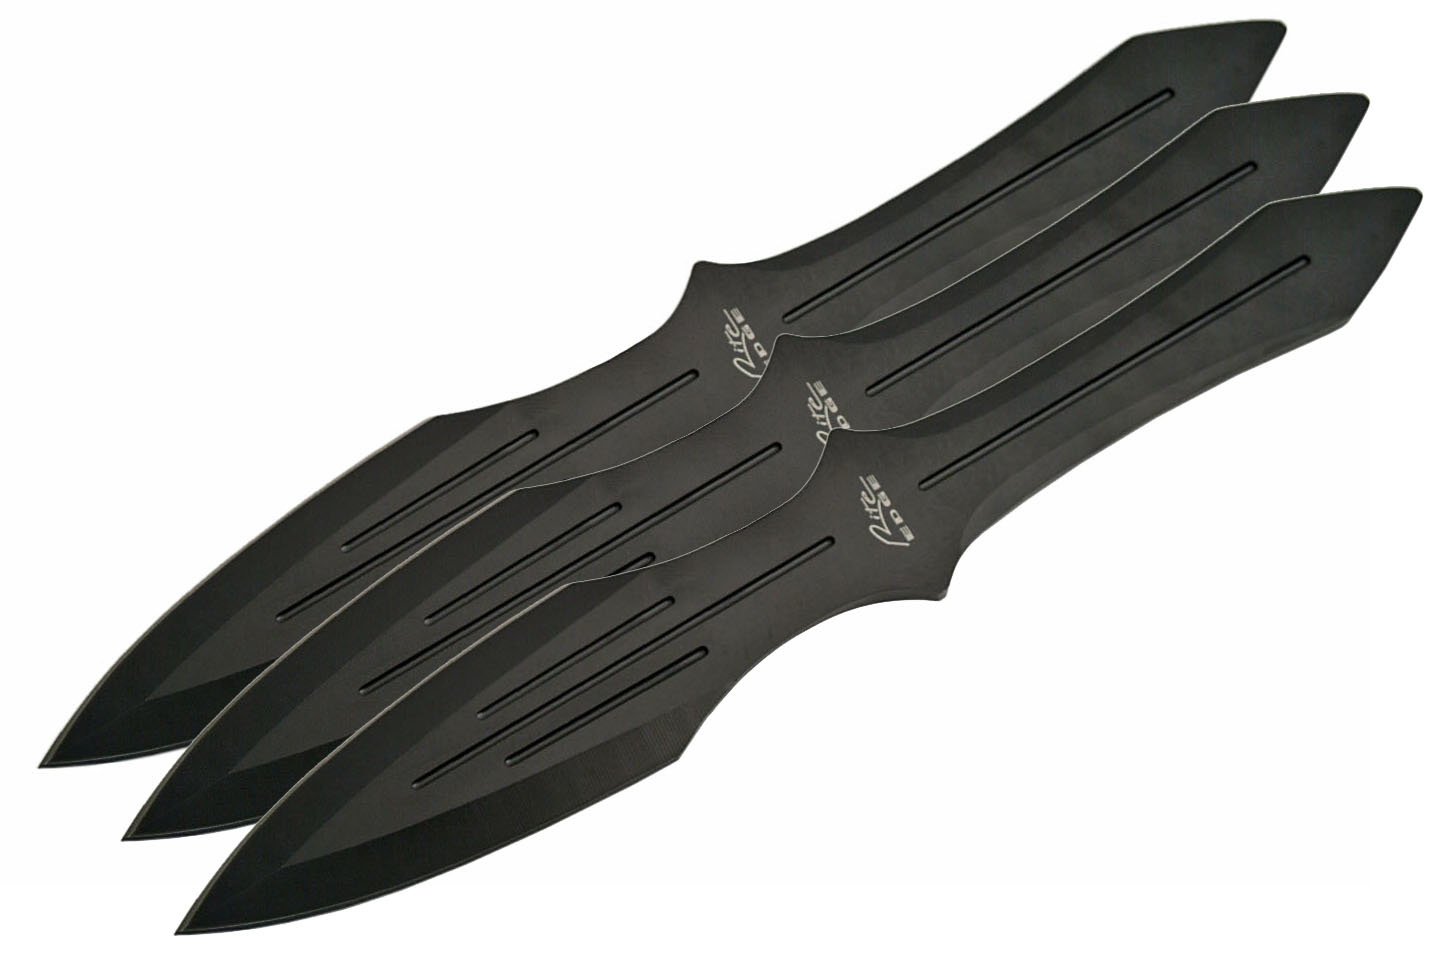 Pro Quality 3 Piece Throwing Knife Set